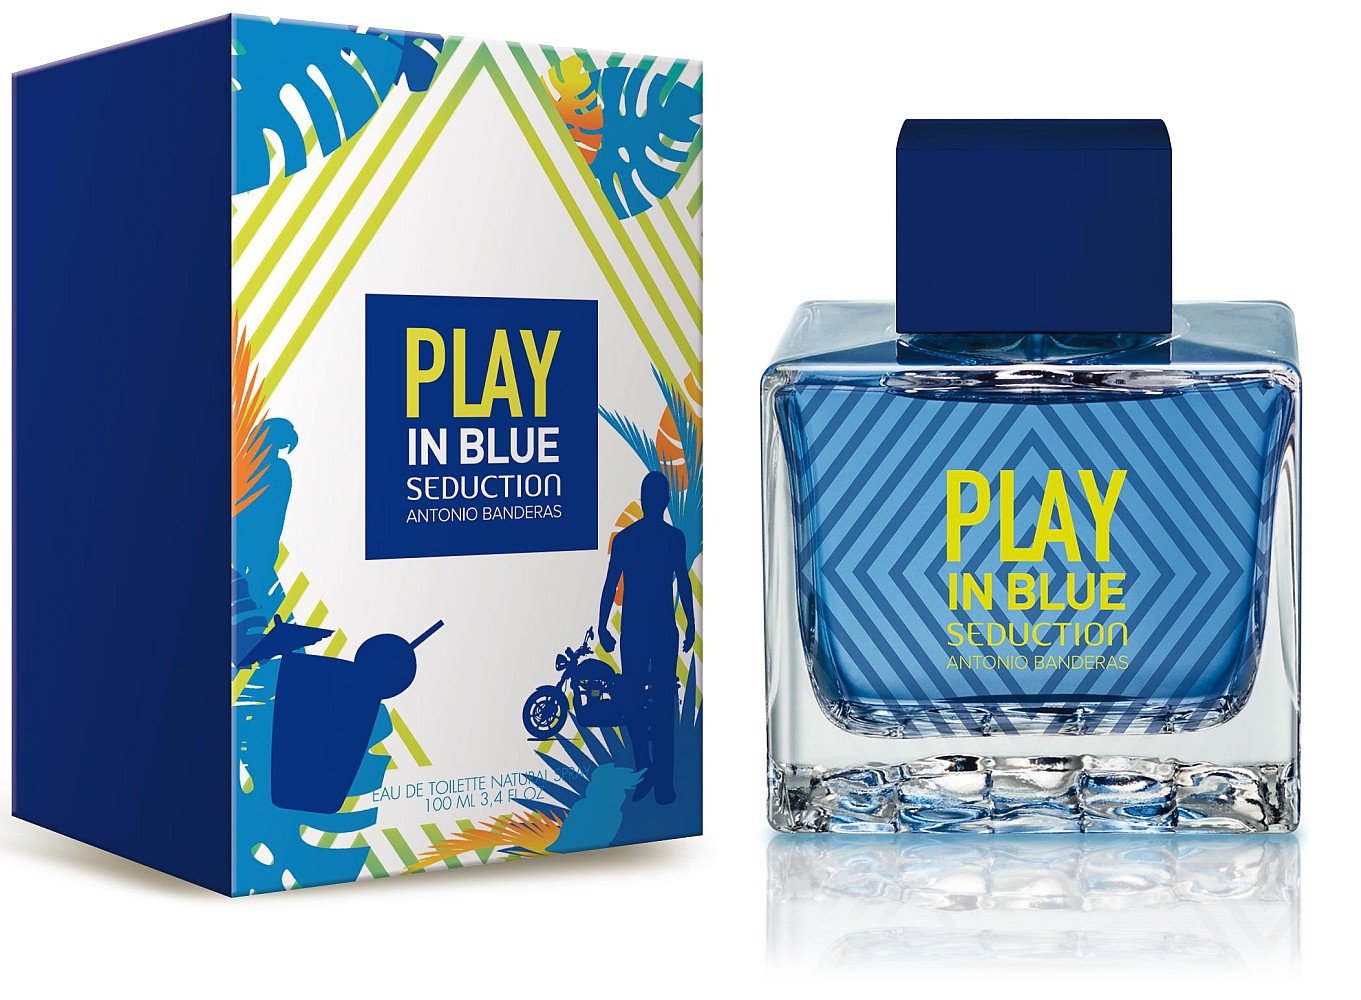 8f66d3074 Play In Blue Seduction For Men Antonio Banderas cologne - a new ...